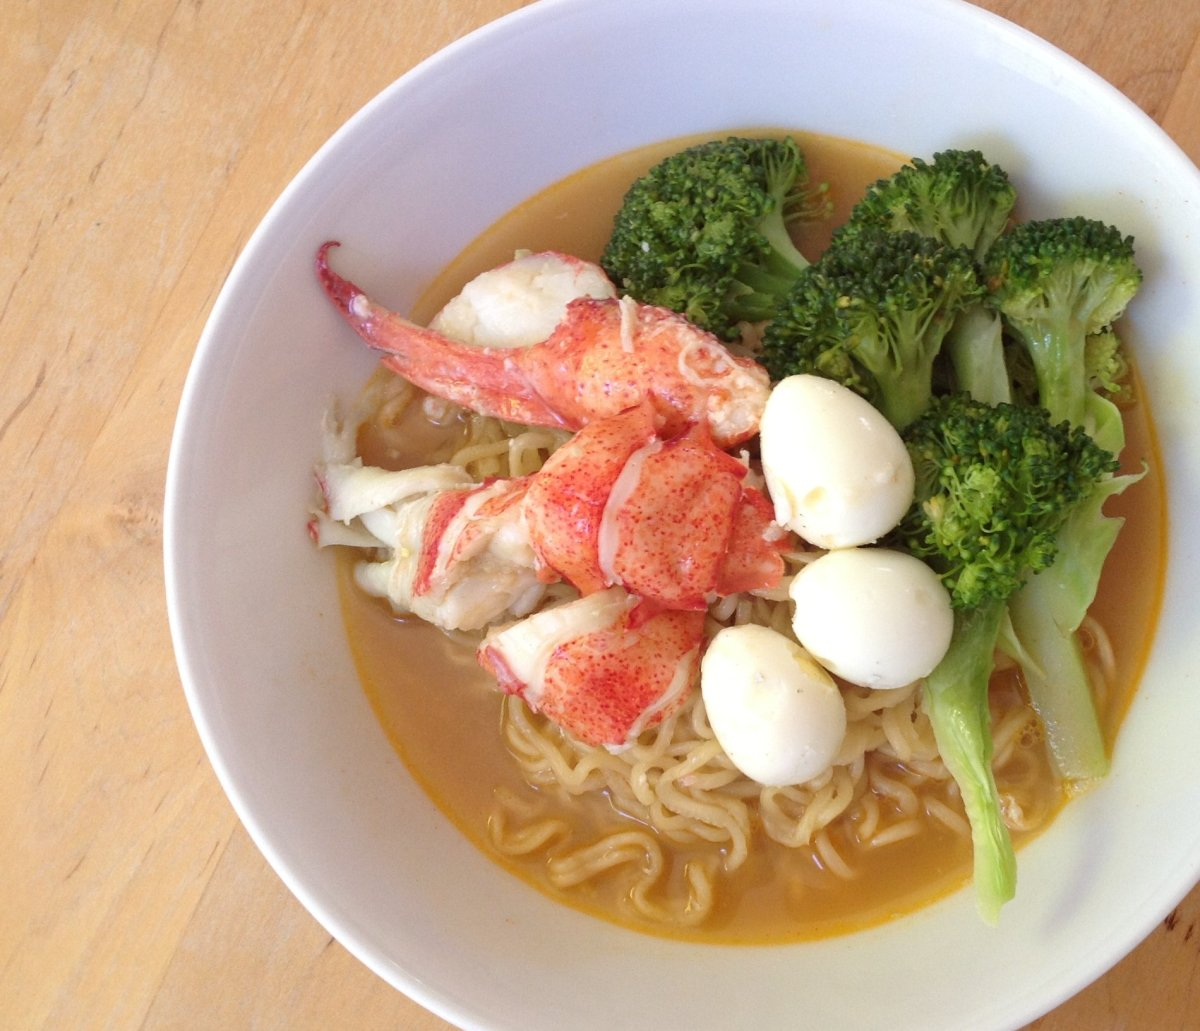 instant ramen deluxe - the lobster edition | yangsze choo